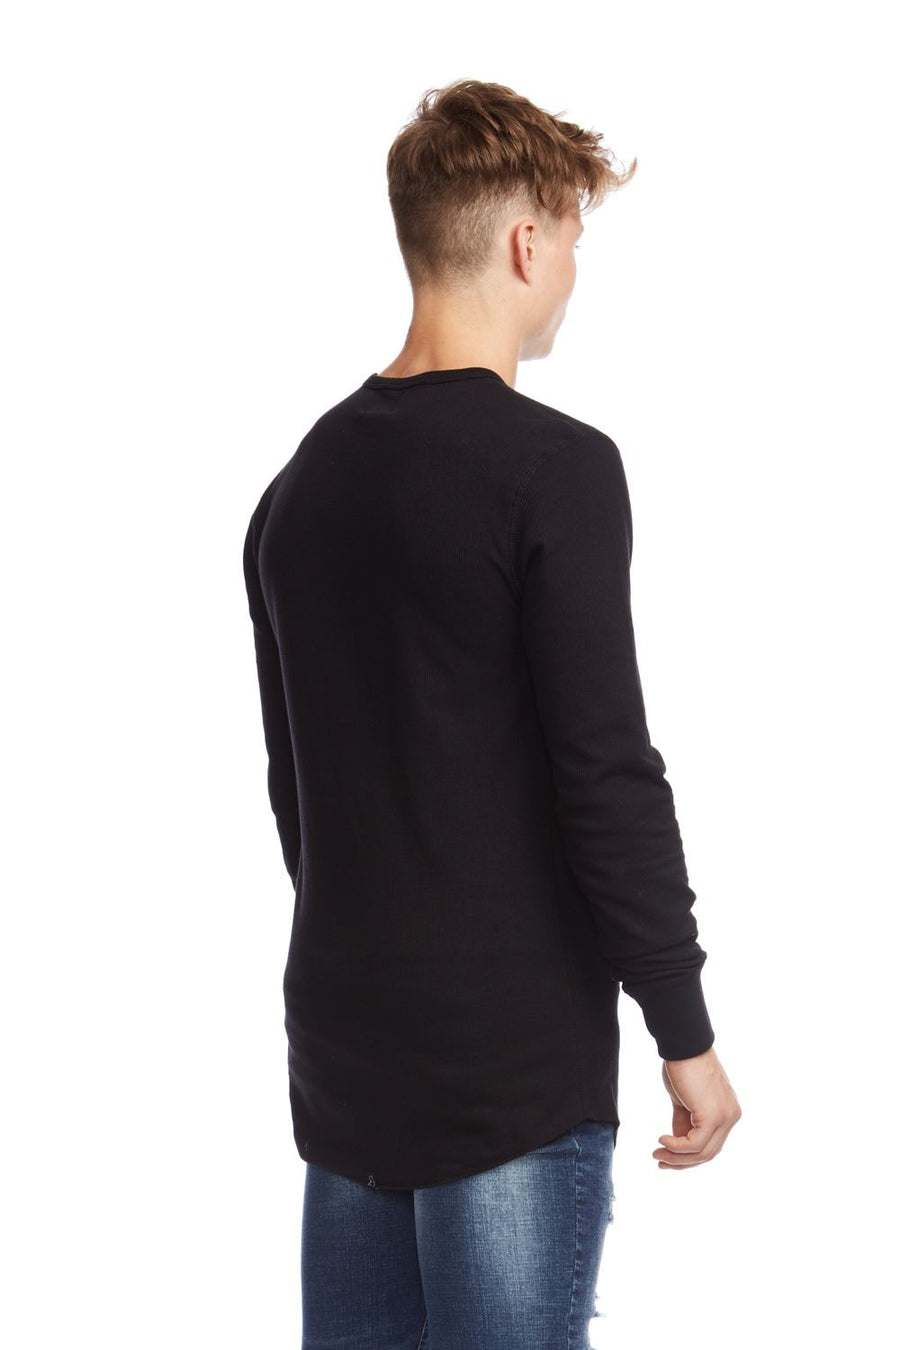 kuwalla tee thermal underscoop long sleeve black